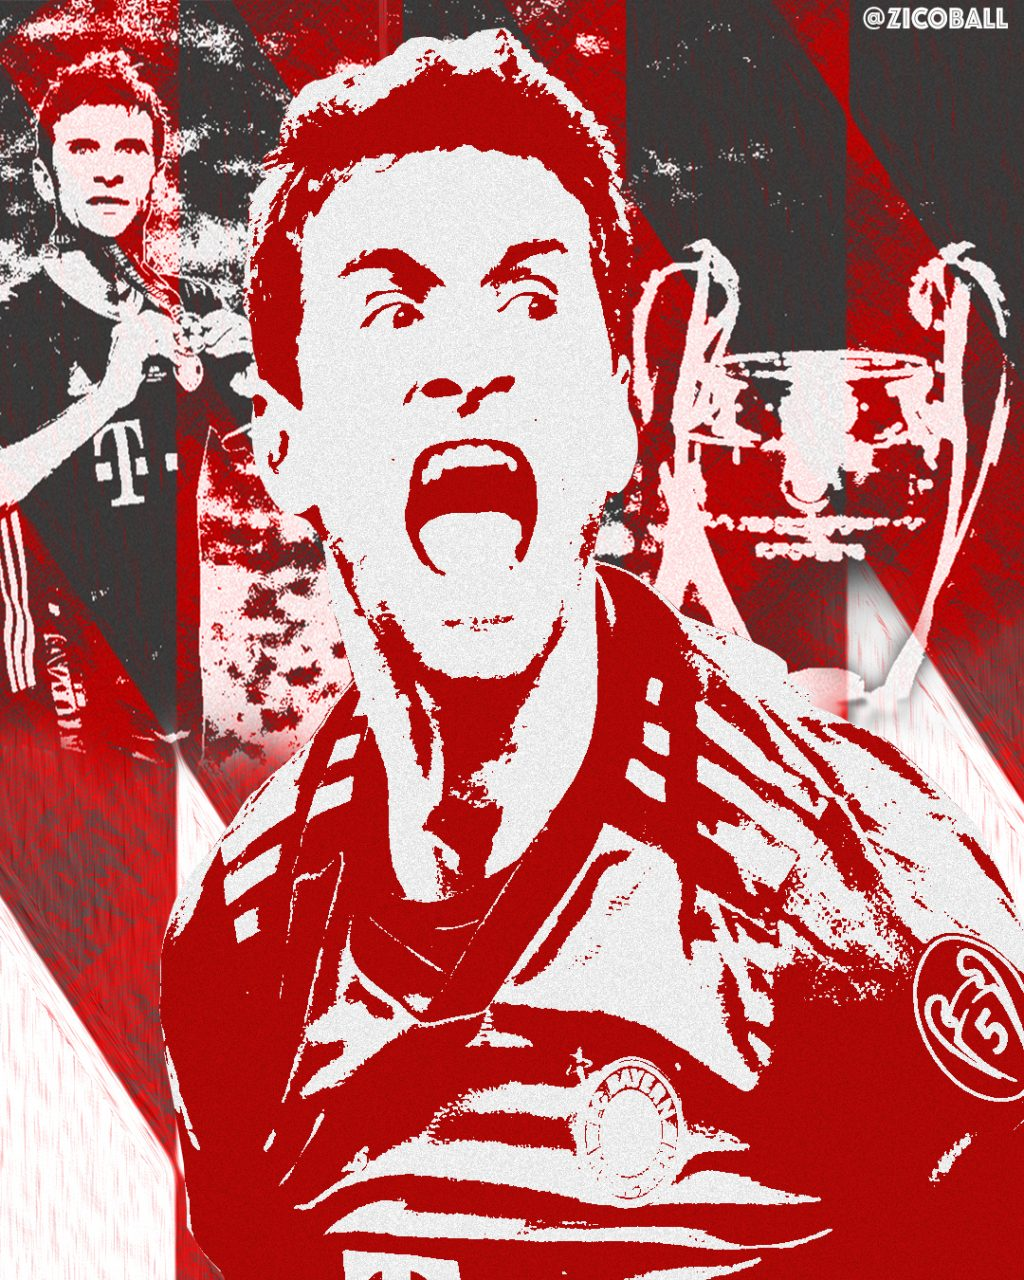 Thomas Muller in a Champions League themed mashup Image